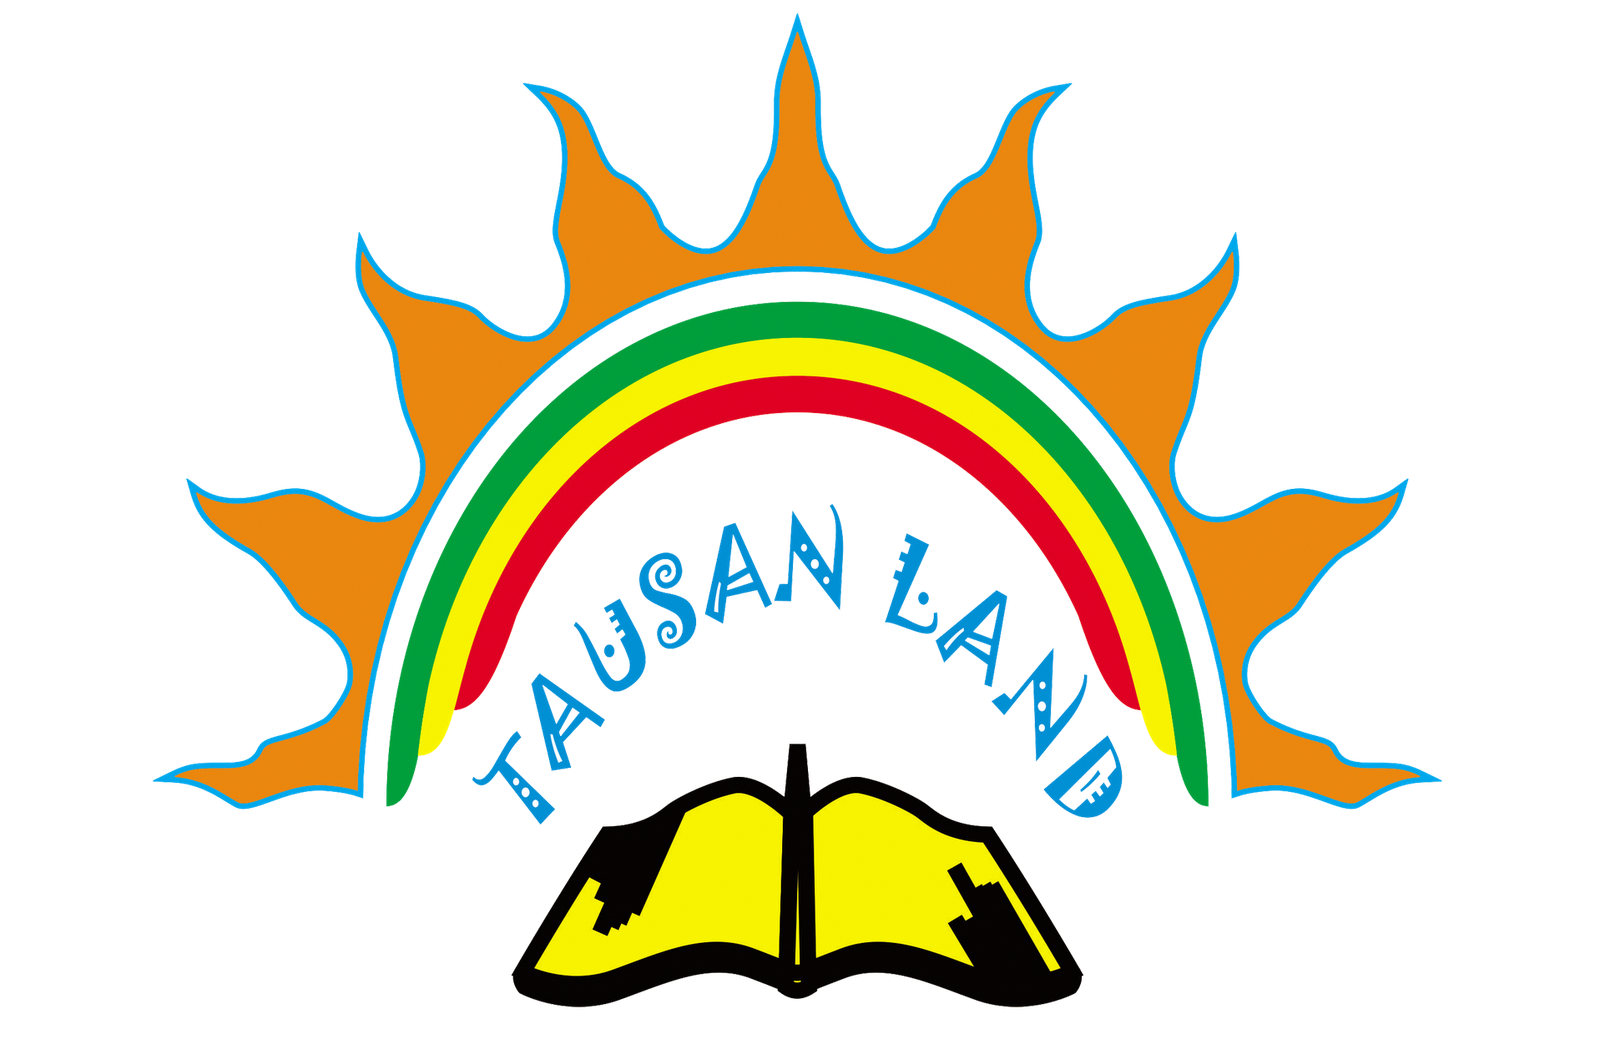 PG-TK IT TAUSAN LAND